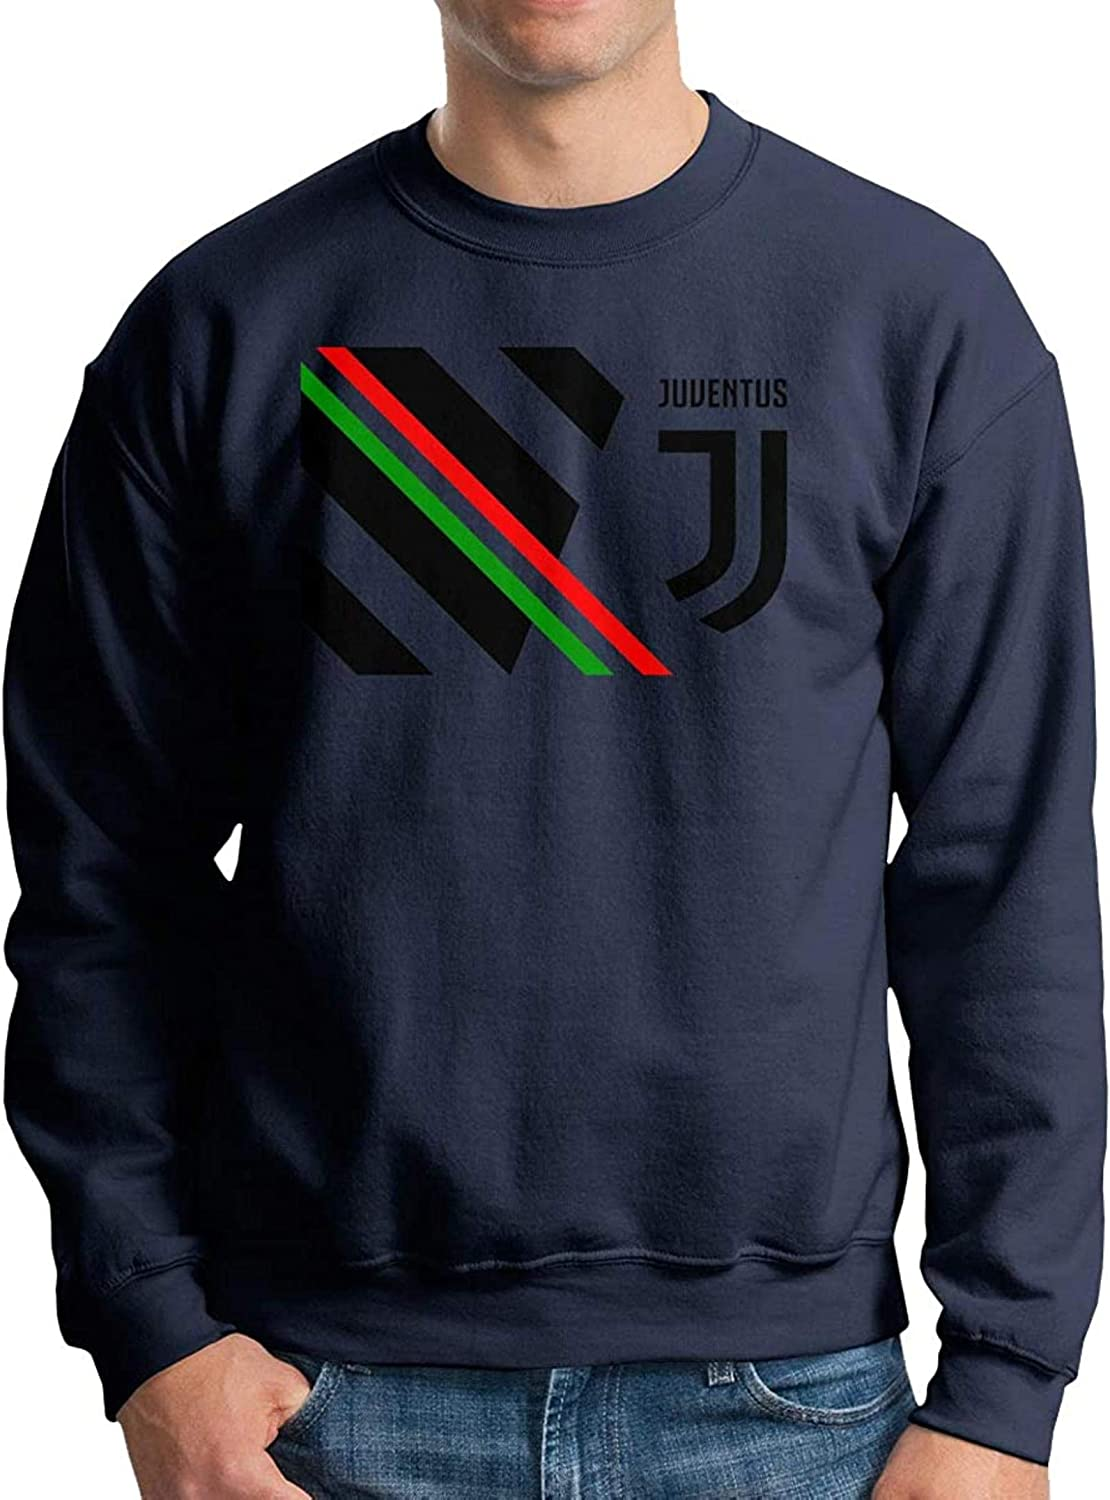 Ju Football Green II Men's Boys Crewneck Basketball Team Unisex Pullover Sweatshirt Crew Neck Hoodie Black